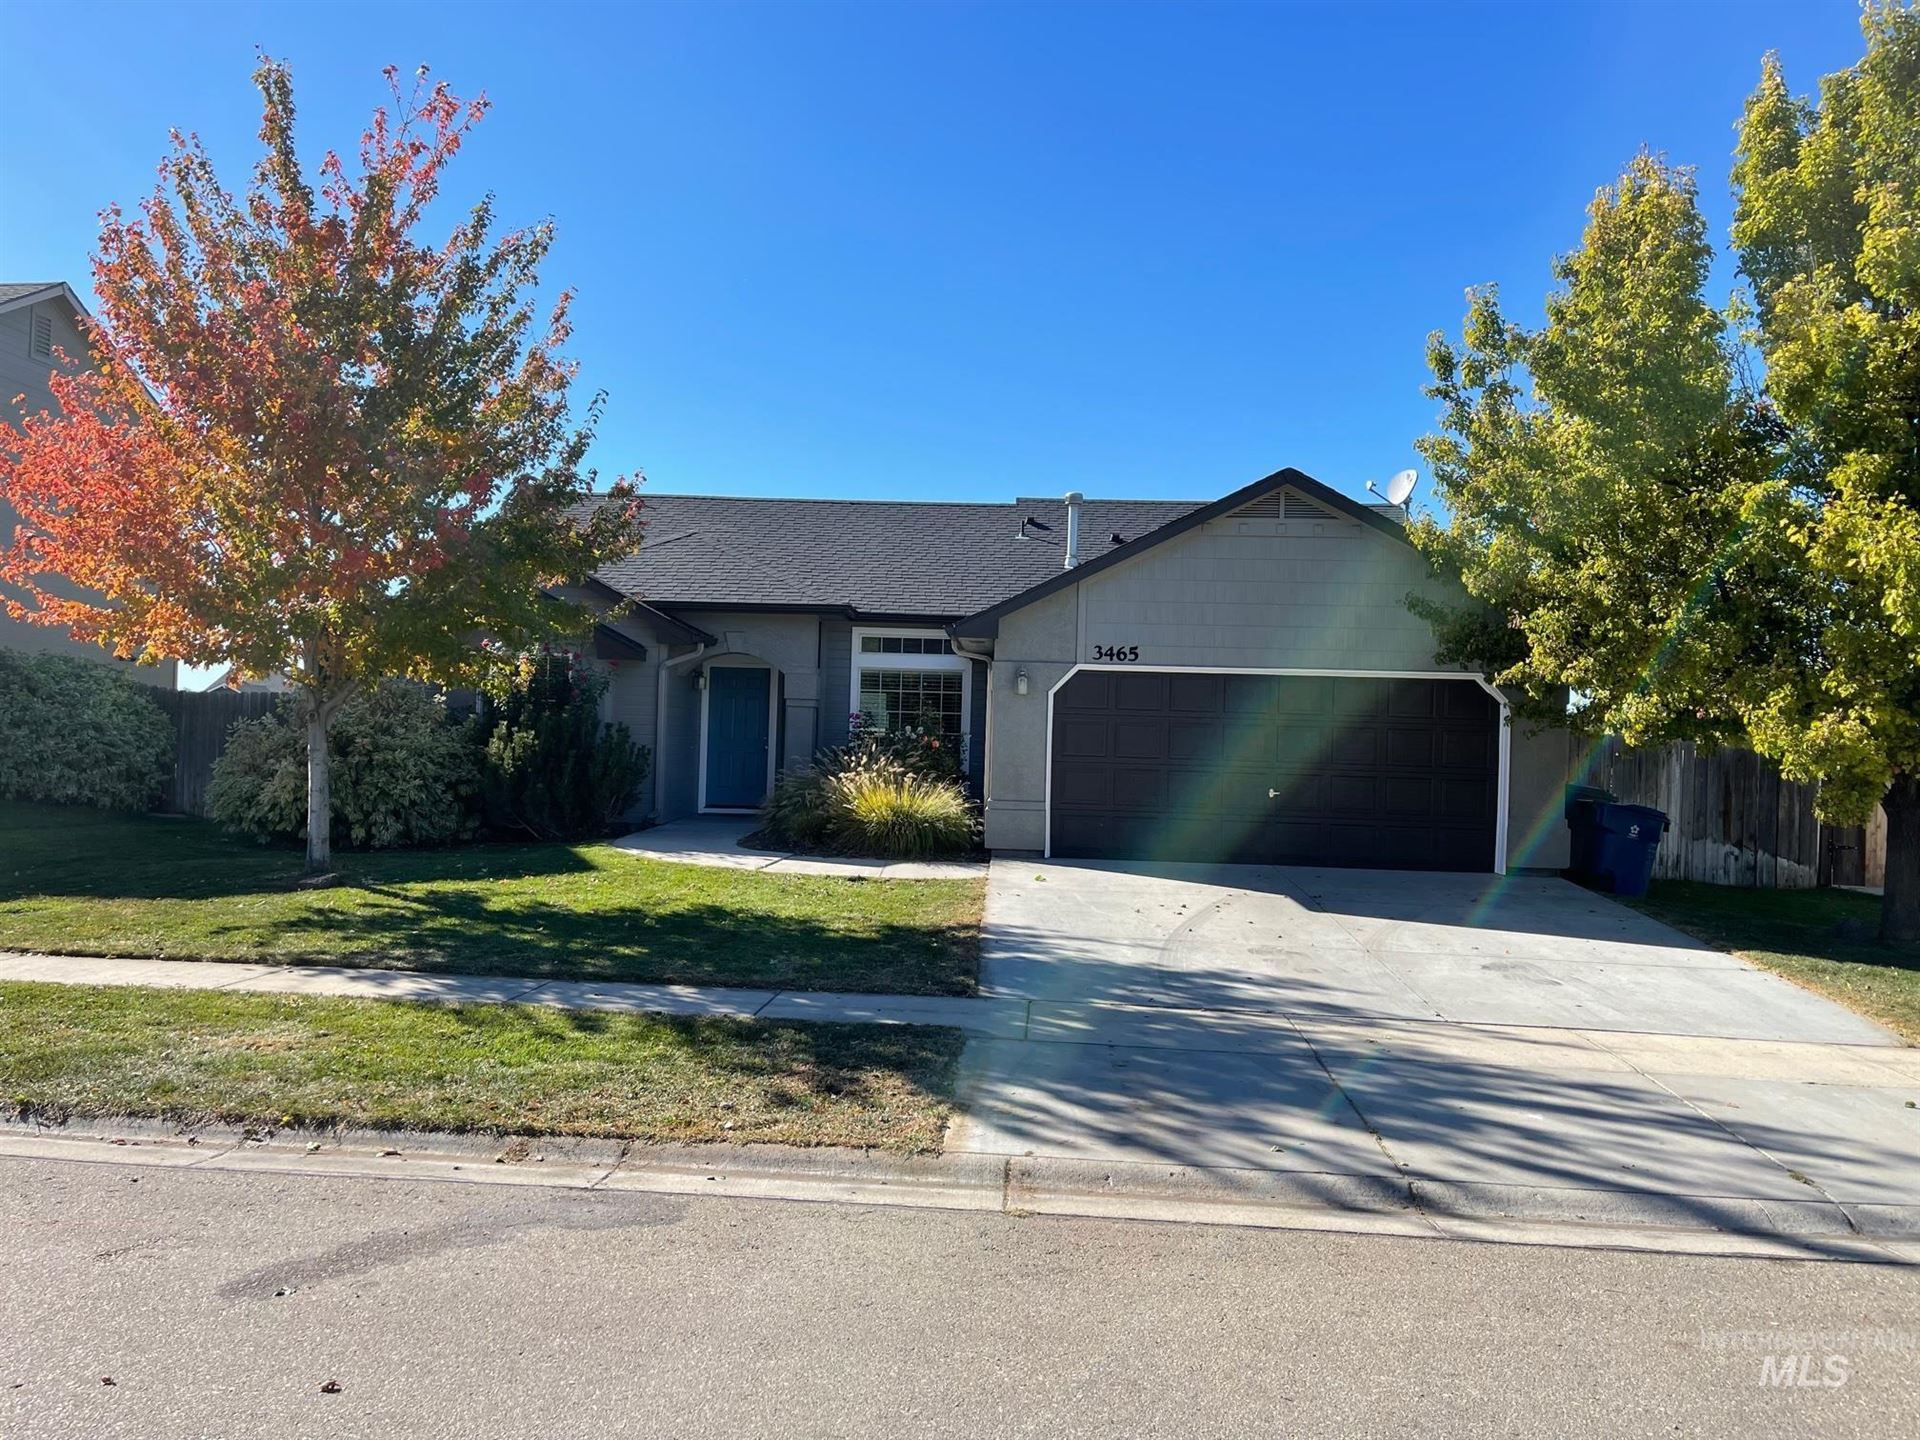 3465 Payette River, Nampa, ID 83686 - MLS#: 98822592